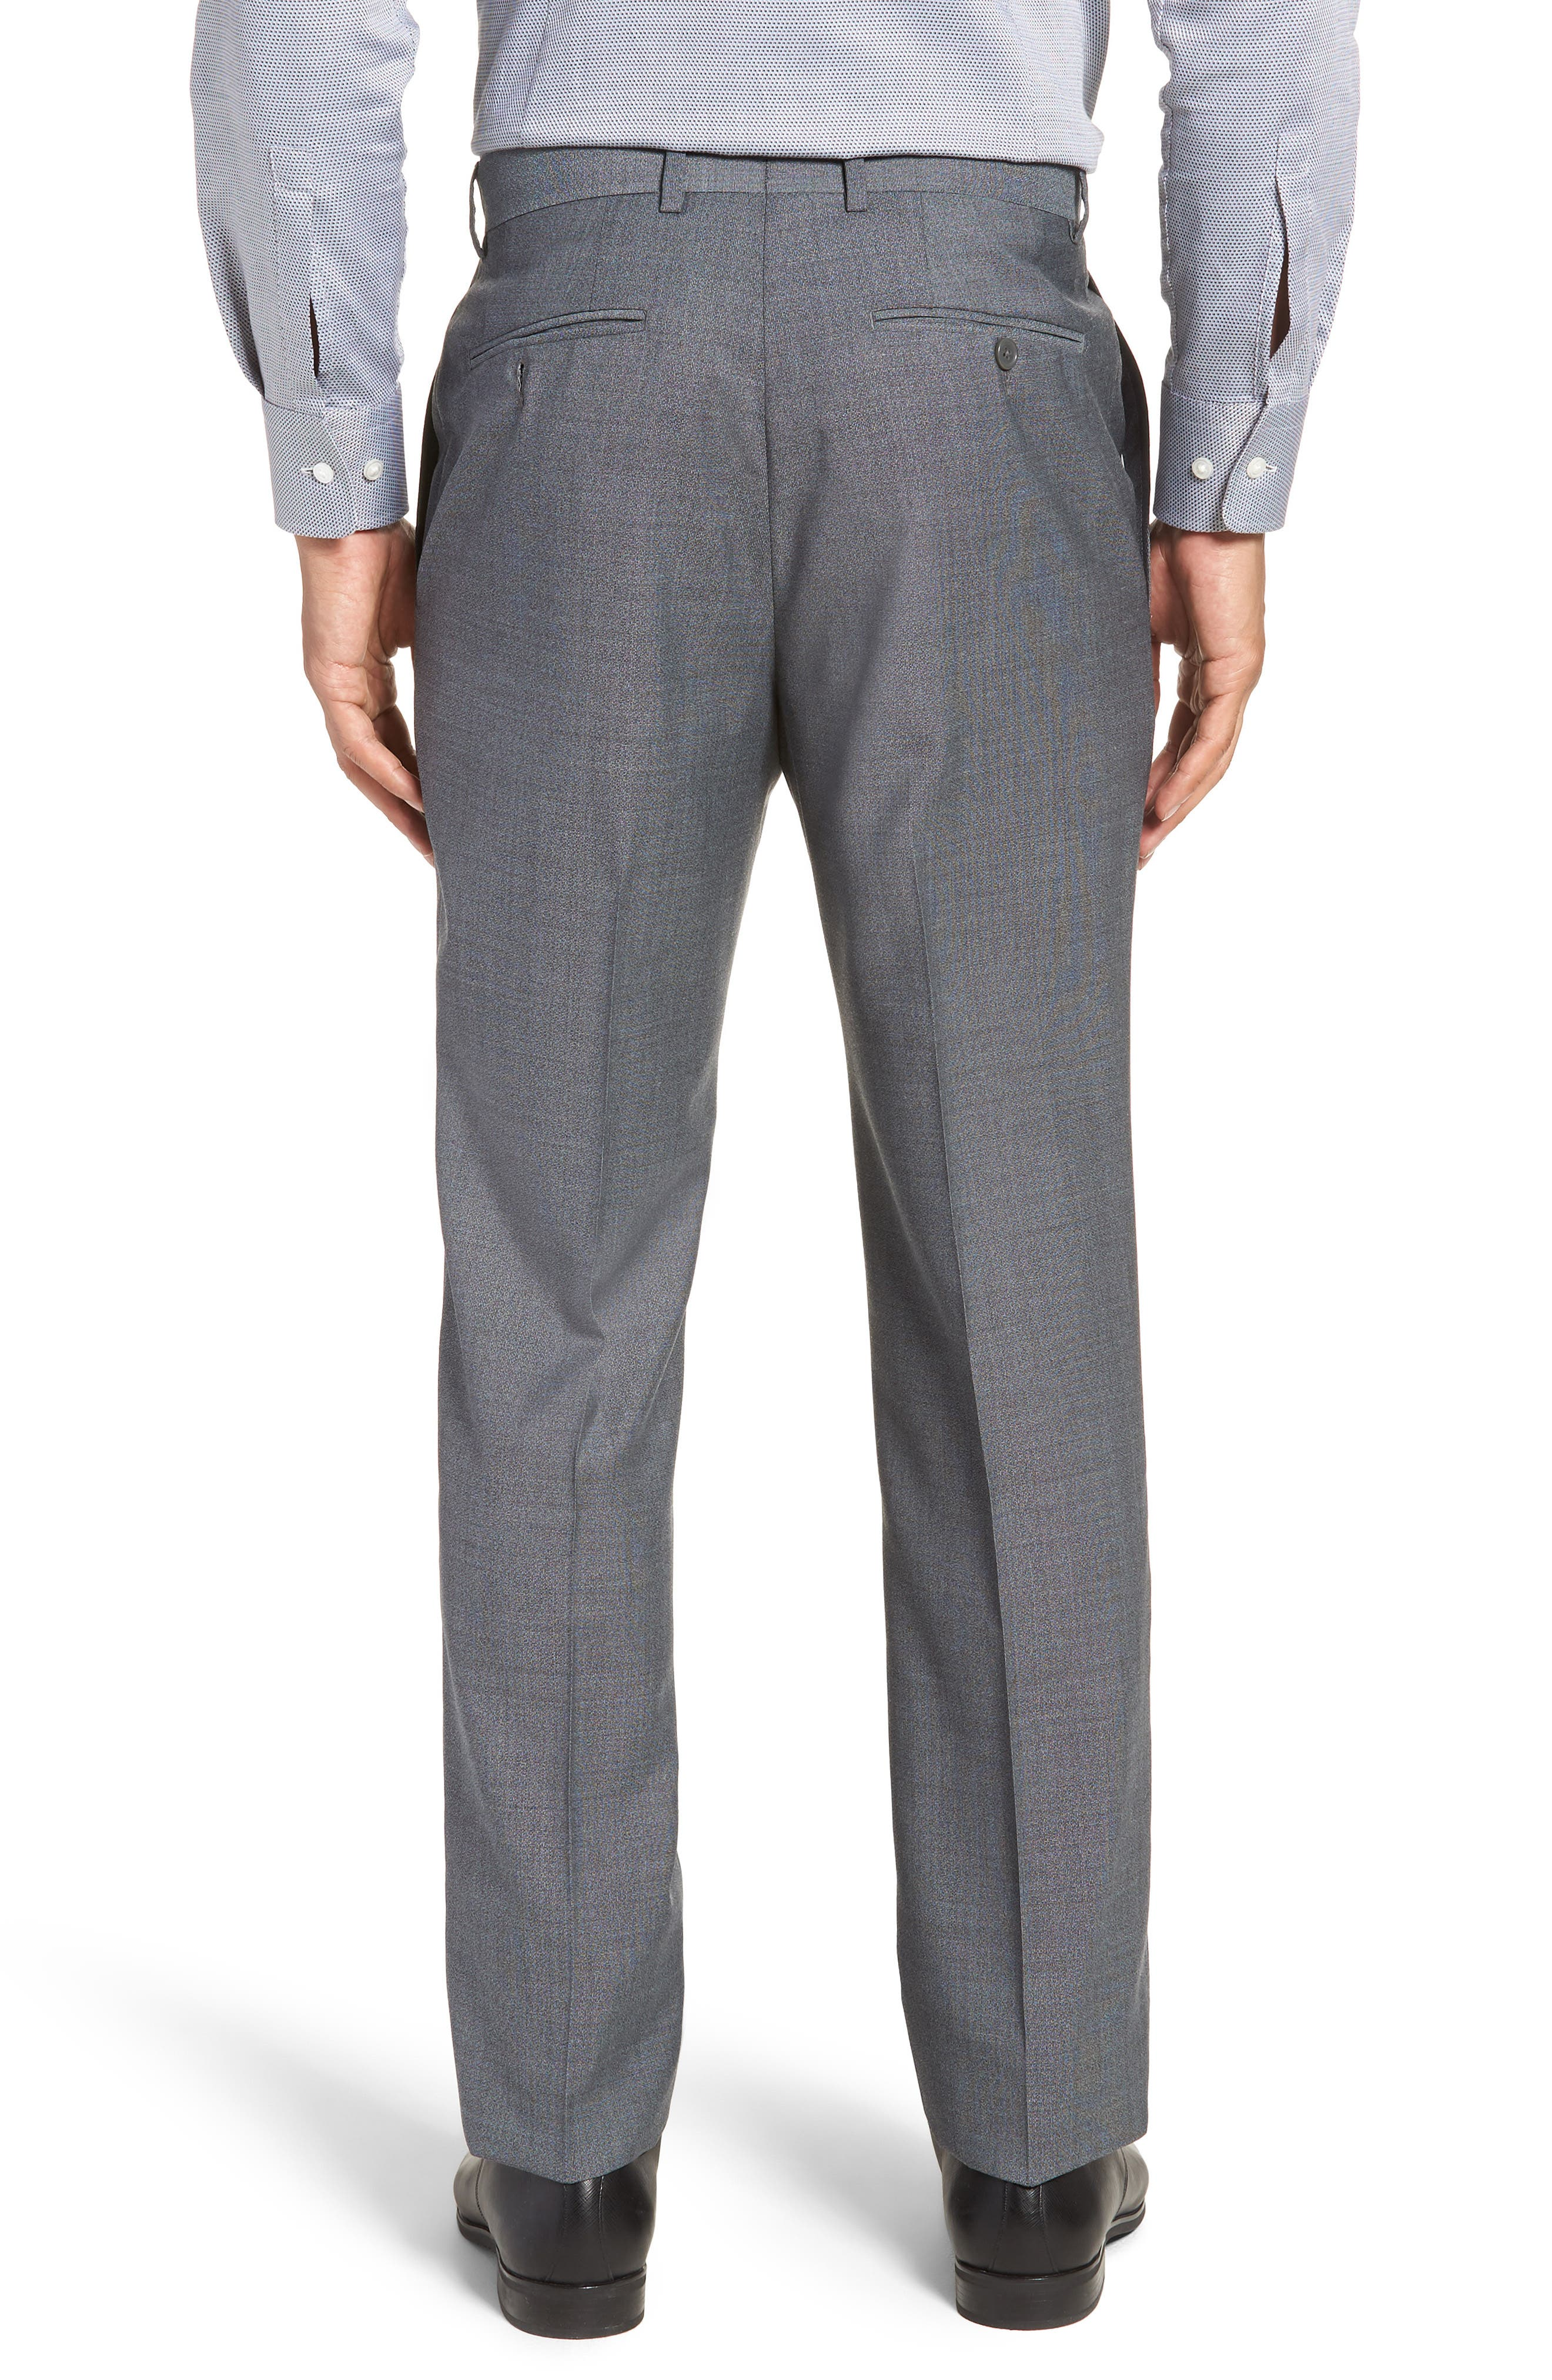 SANTORELLI,                             Flat Front Solid Wool Trousers,                             Alternate thumbnail 2, color,                             020